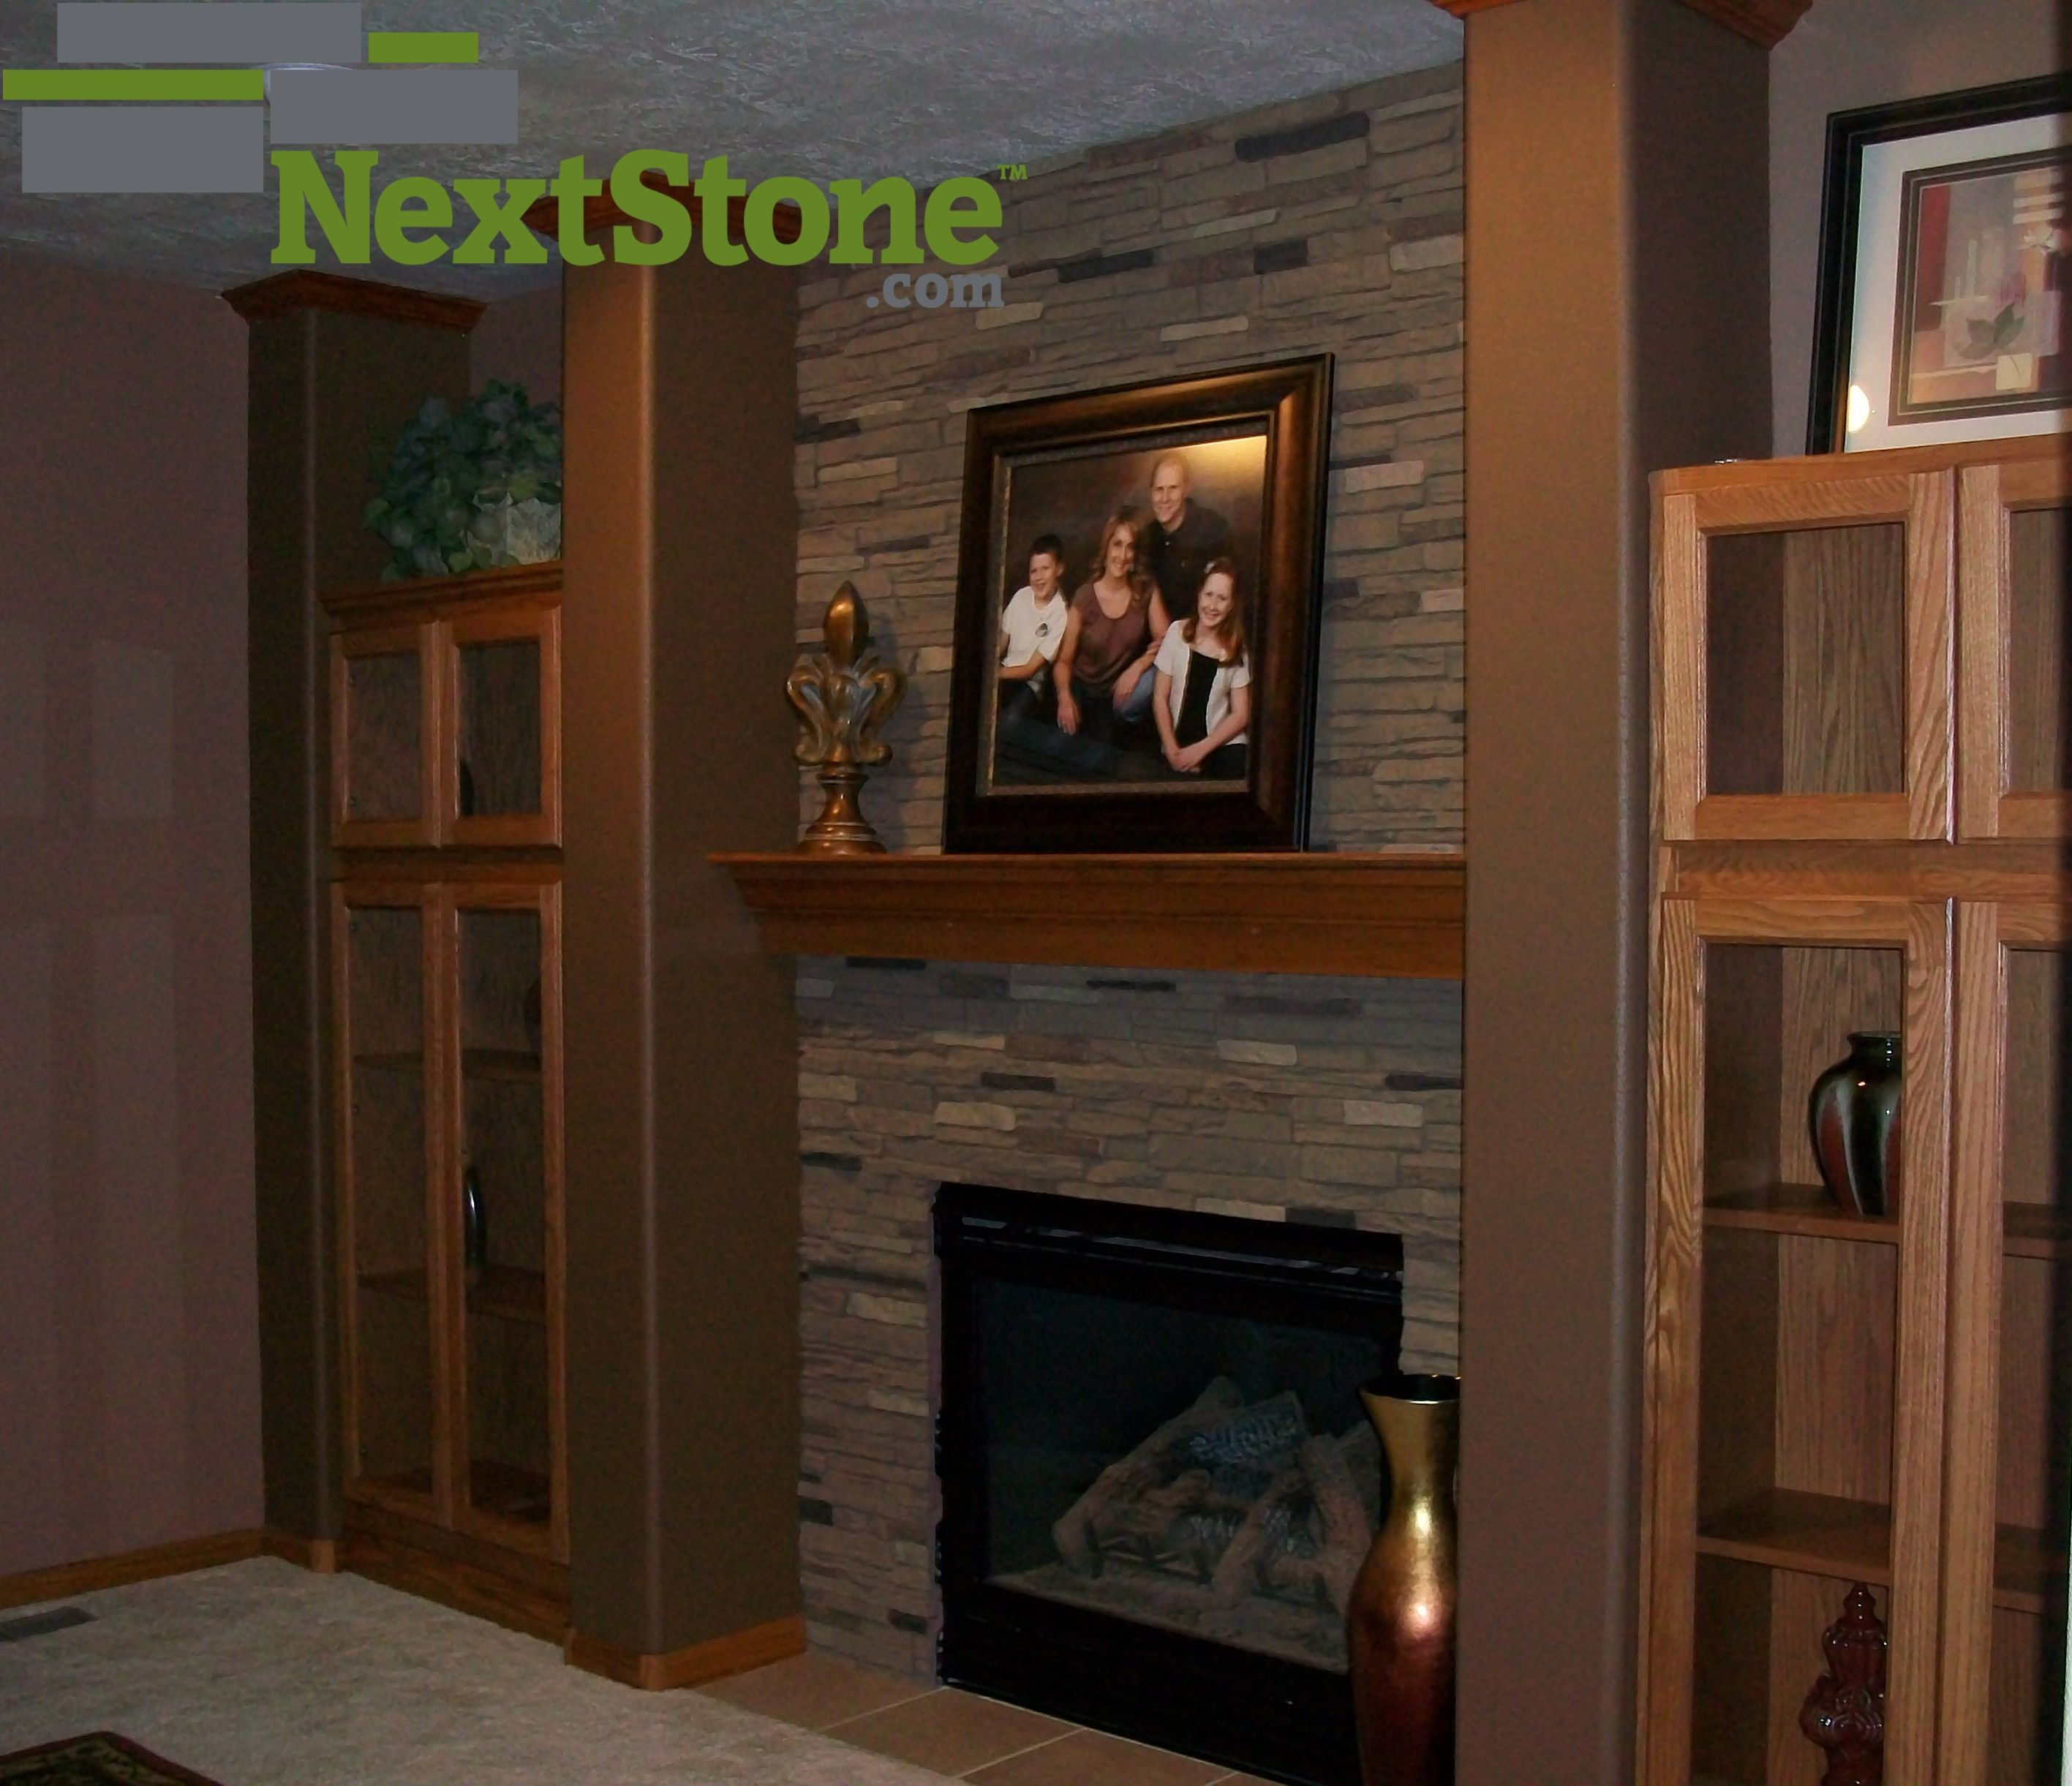 sebnick on screen antique nature fireplaces a surrounds how pinterest stone design fireplace pin ideas paula pictures architecture the by warehouse place your faux cool to decor mantel for home room house